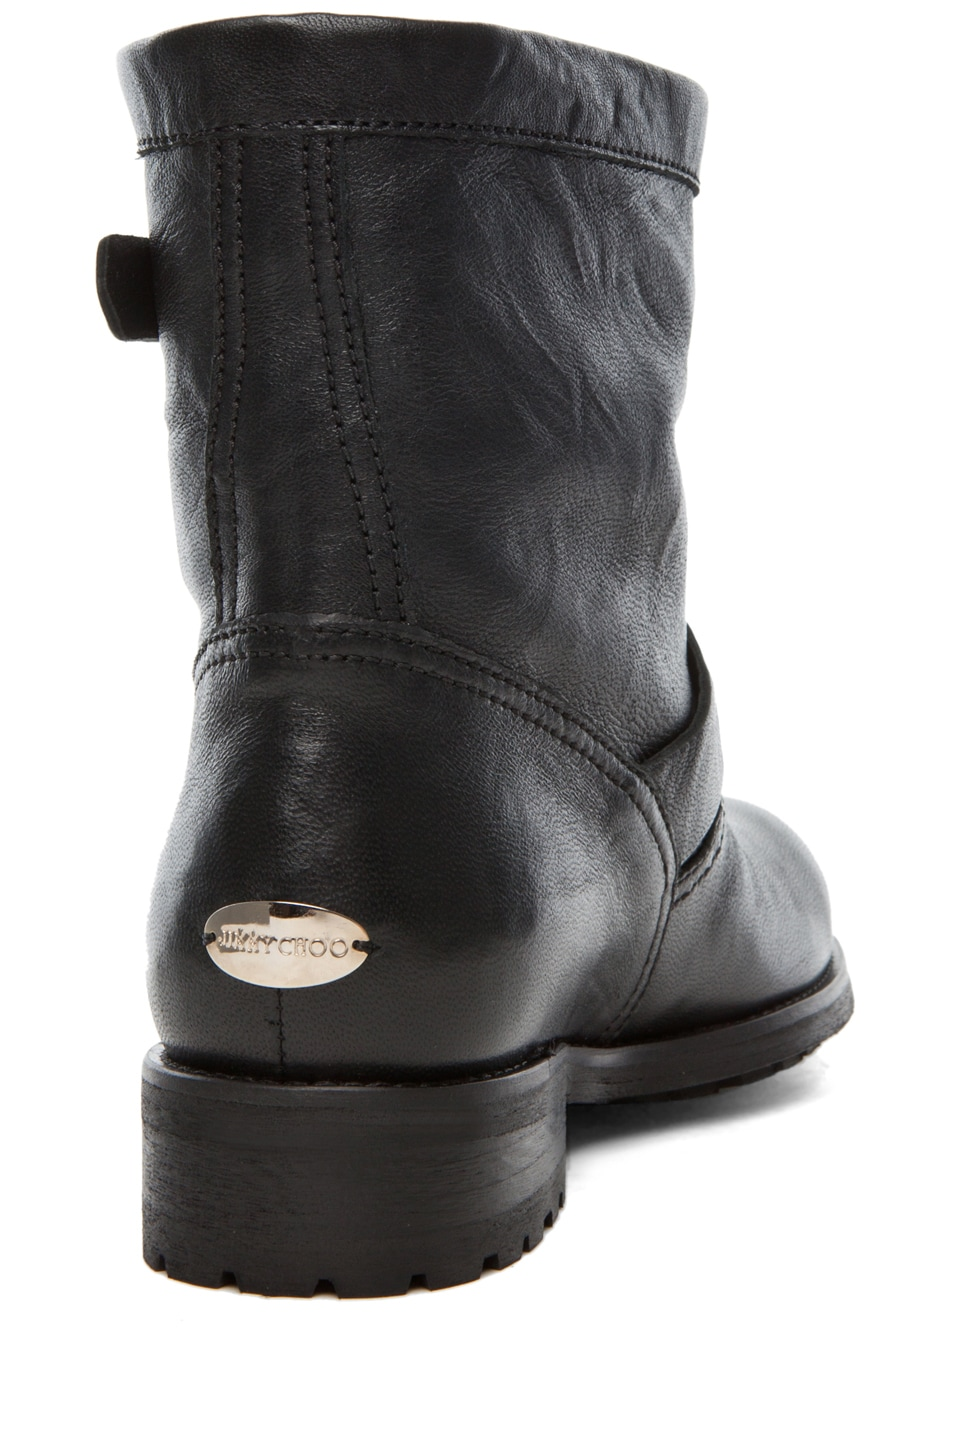 Image 3 of Jimmy Choo Youth Low Biker Boot in Black